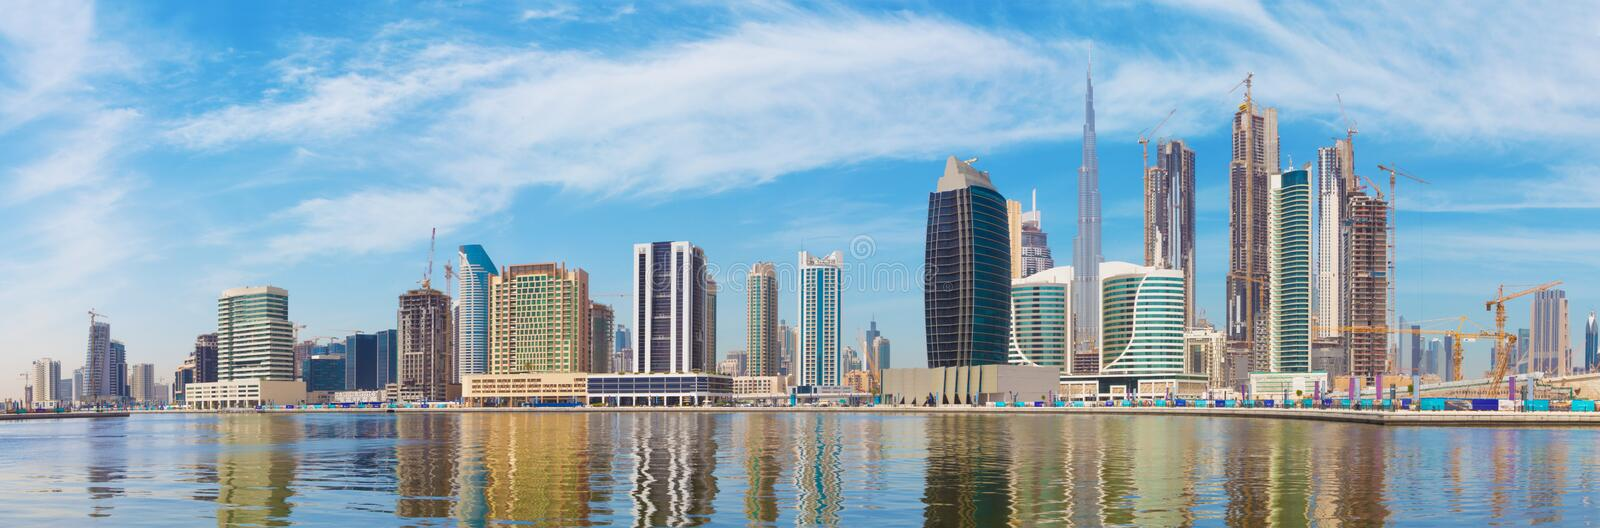 Dubai - The panorama with the new Canal and skyscrapers of Downtown royalty free stock photography